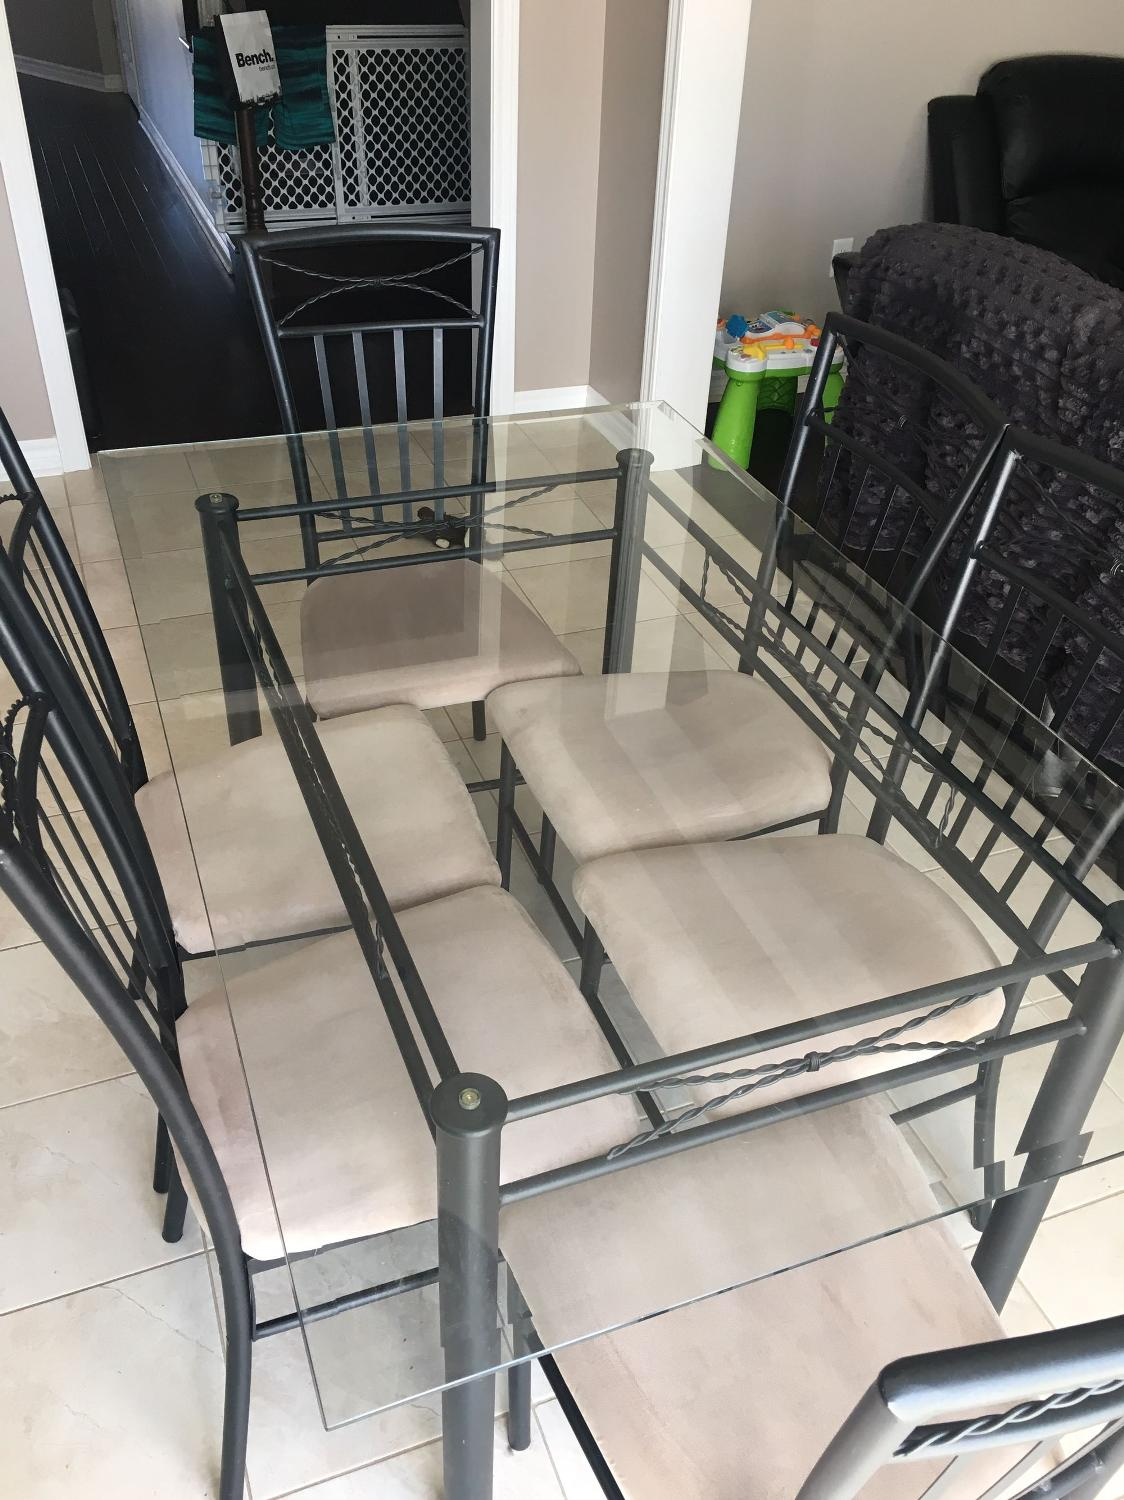 Find More Glass Table With 6 Chairs For Sale At Up To 90 Off Oshawa ON